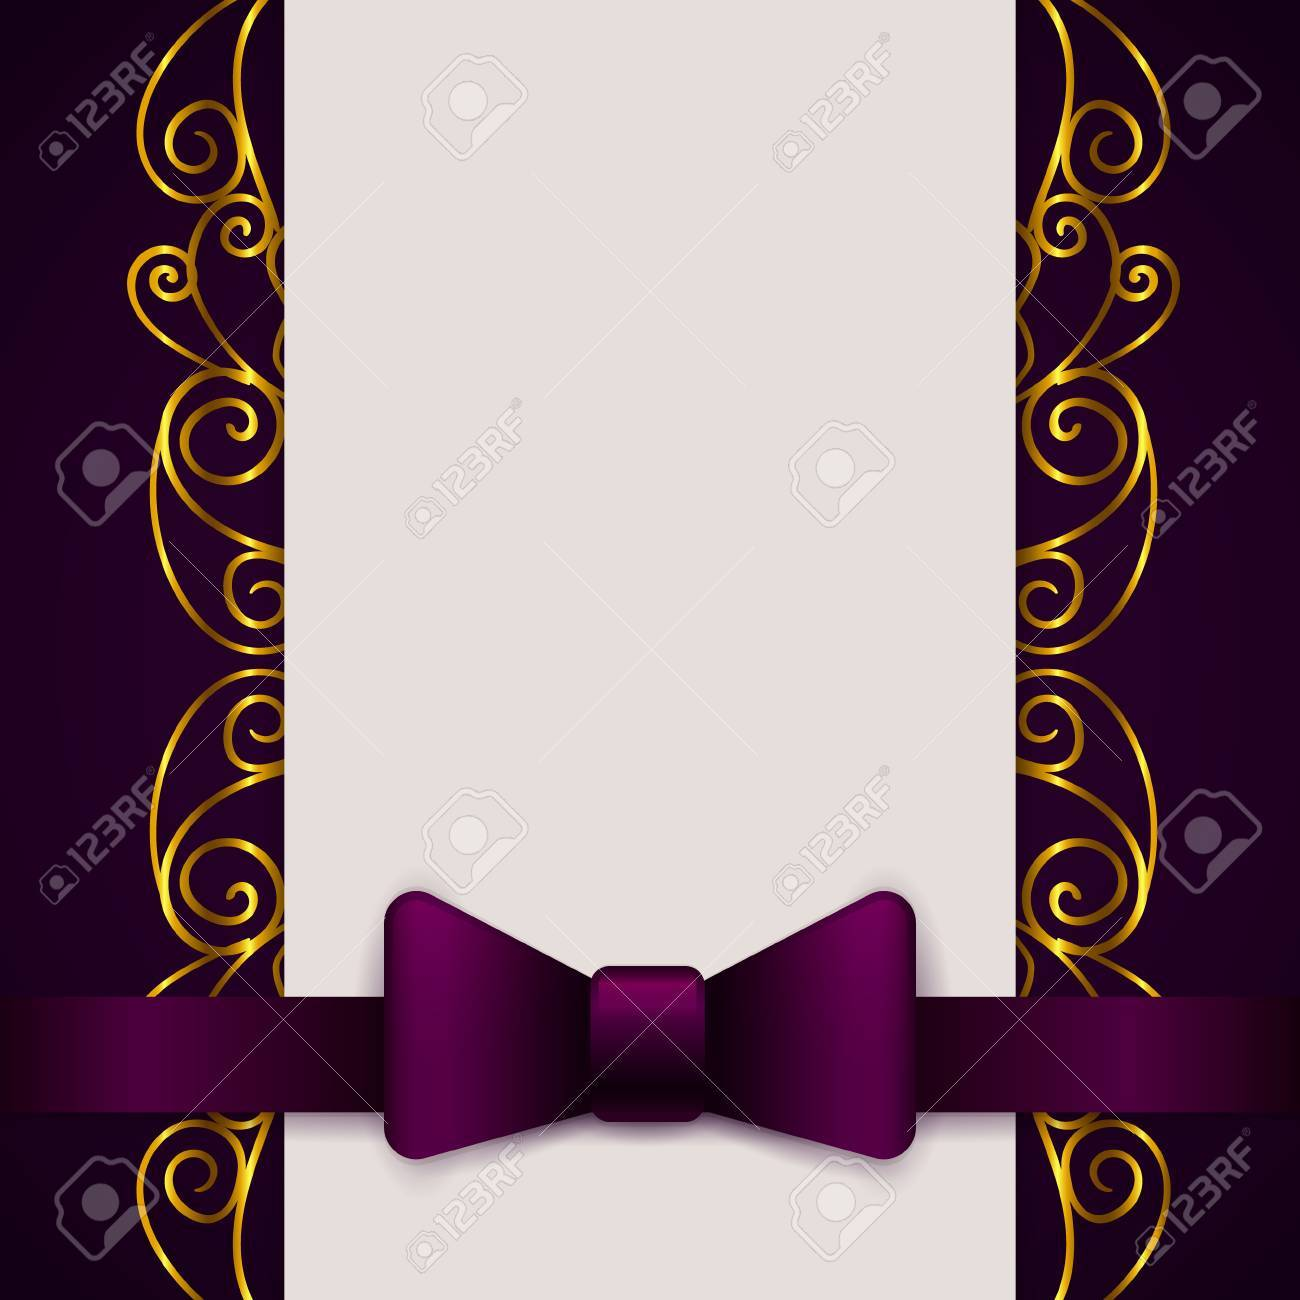 Dark Violet Vintage Greeting Card Template With Bow And Ribbon